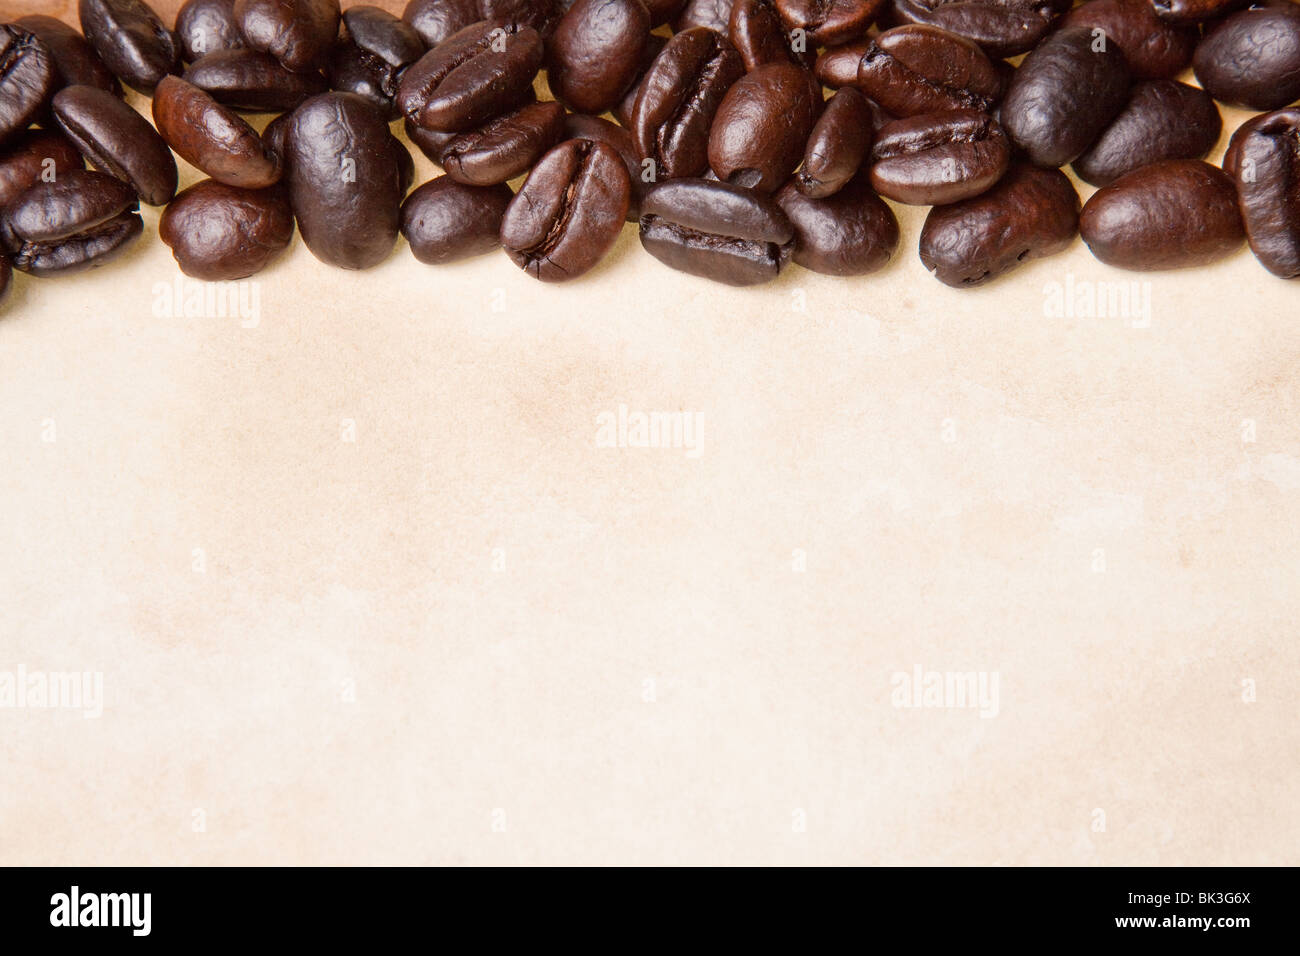 coffee beans on a parchment paper background - Stock Image